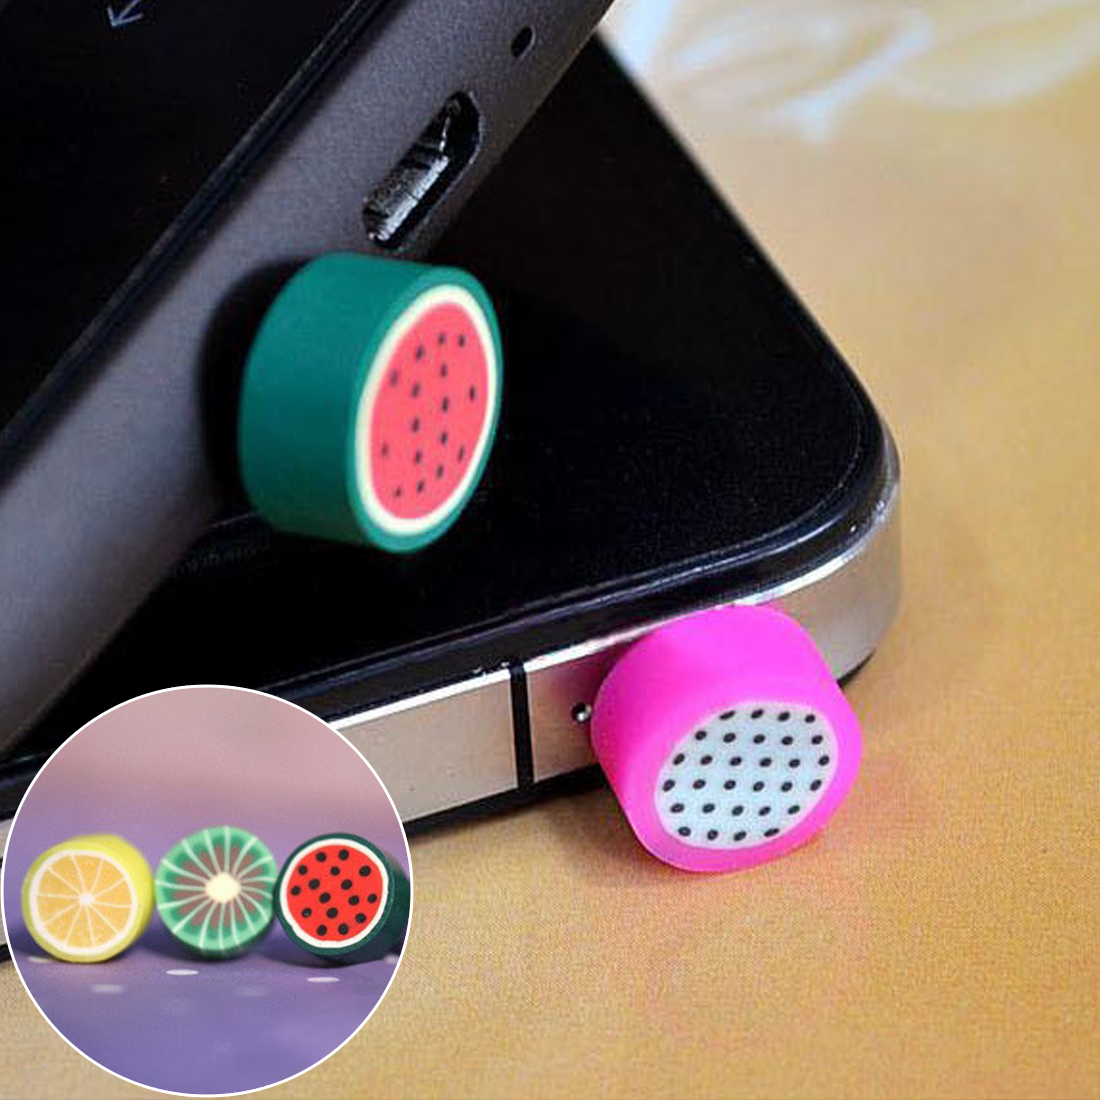 Simulated Lovely Fruit Phone Anti Dust Plug Cell Phone Accessories For All Normal 3.5mm Earphone Jack Plug randomly 1pcs